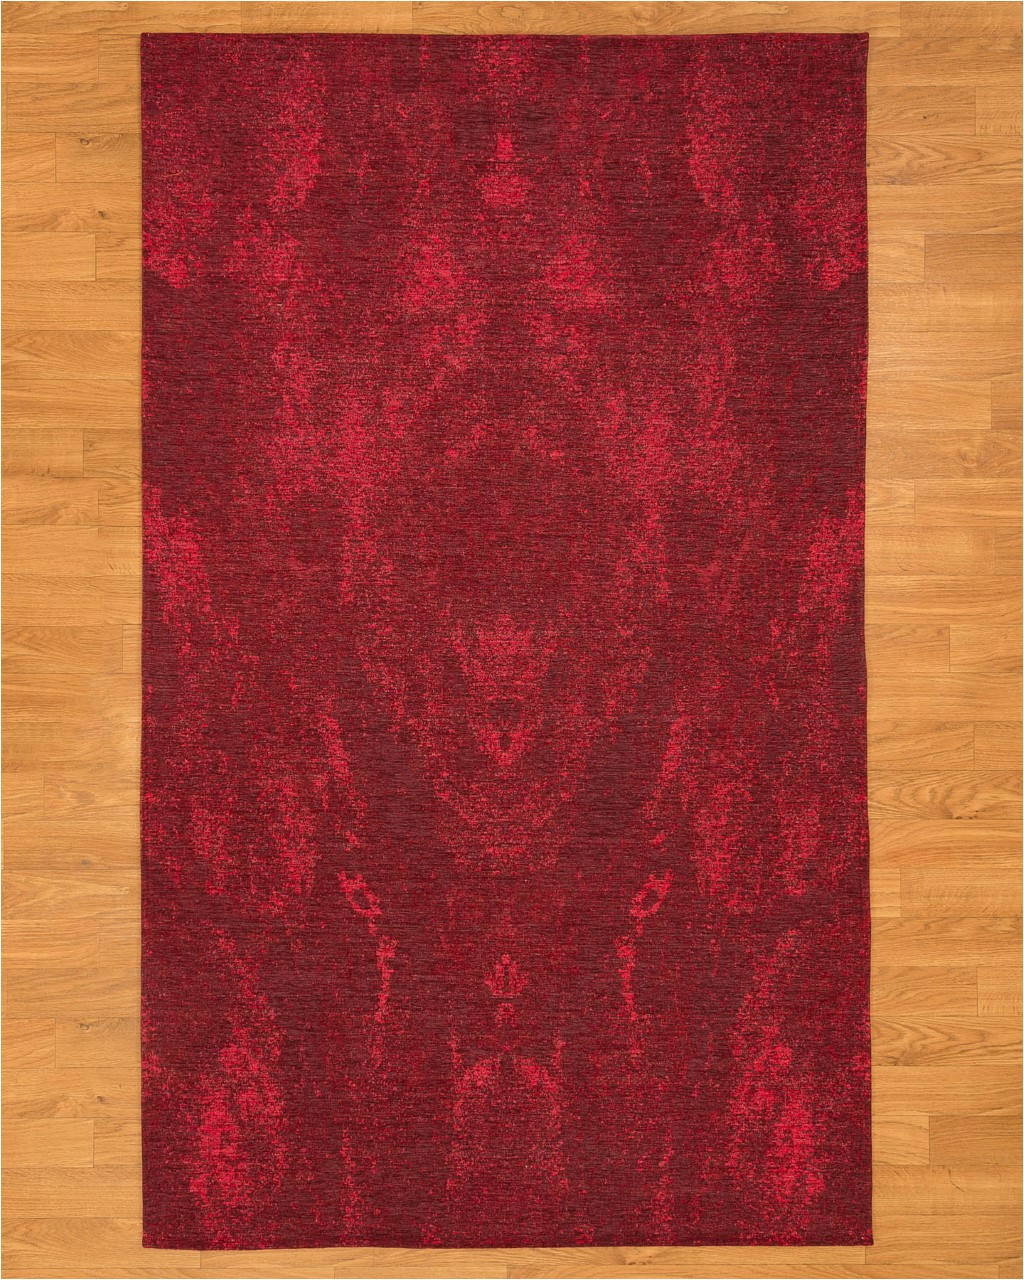 Red and Brown area Rugs Walmart Natural area Rugs Red area Rug